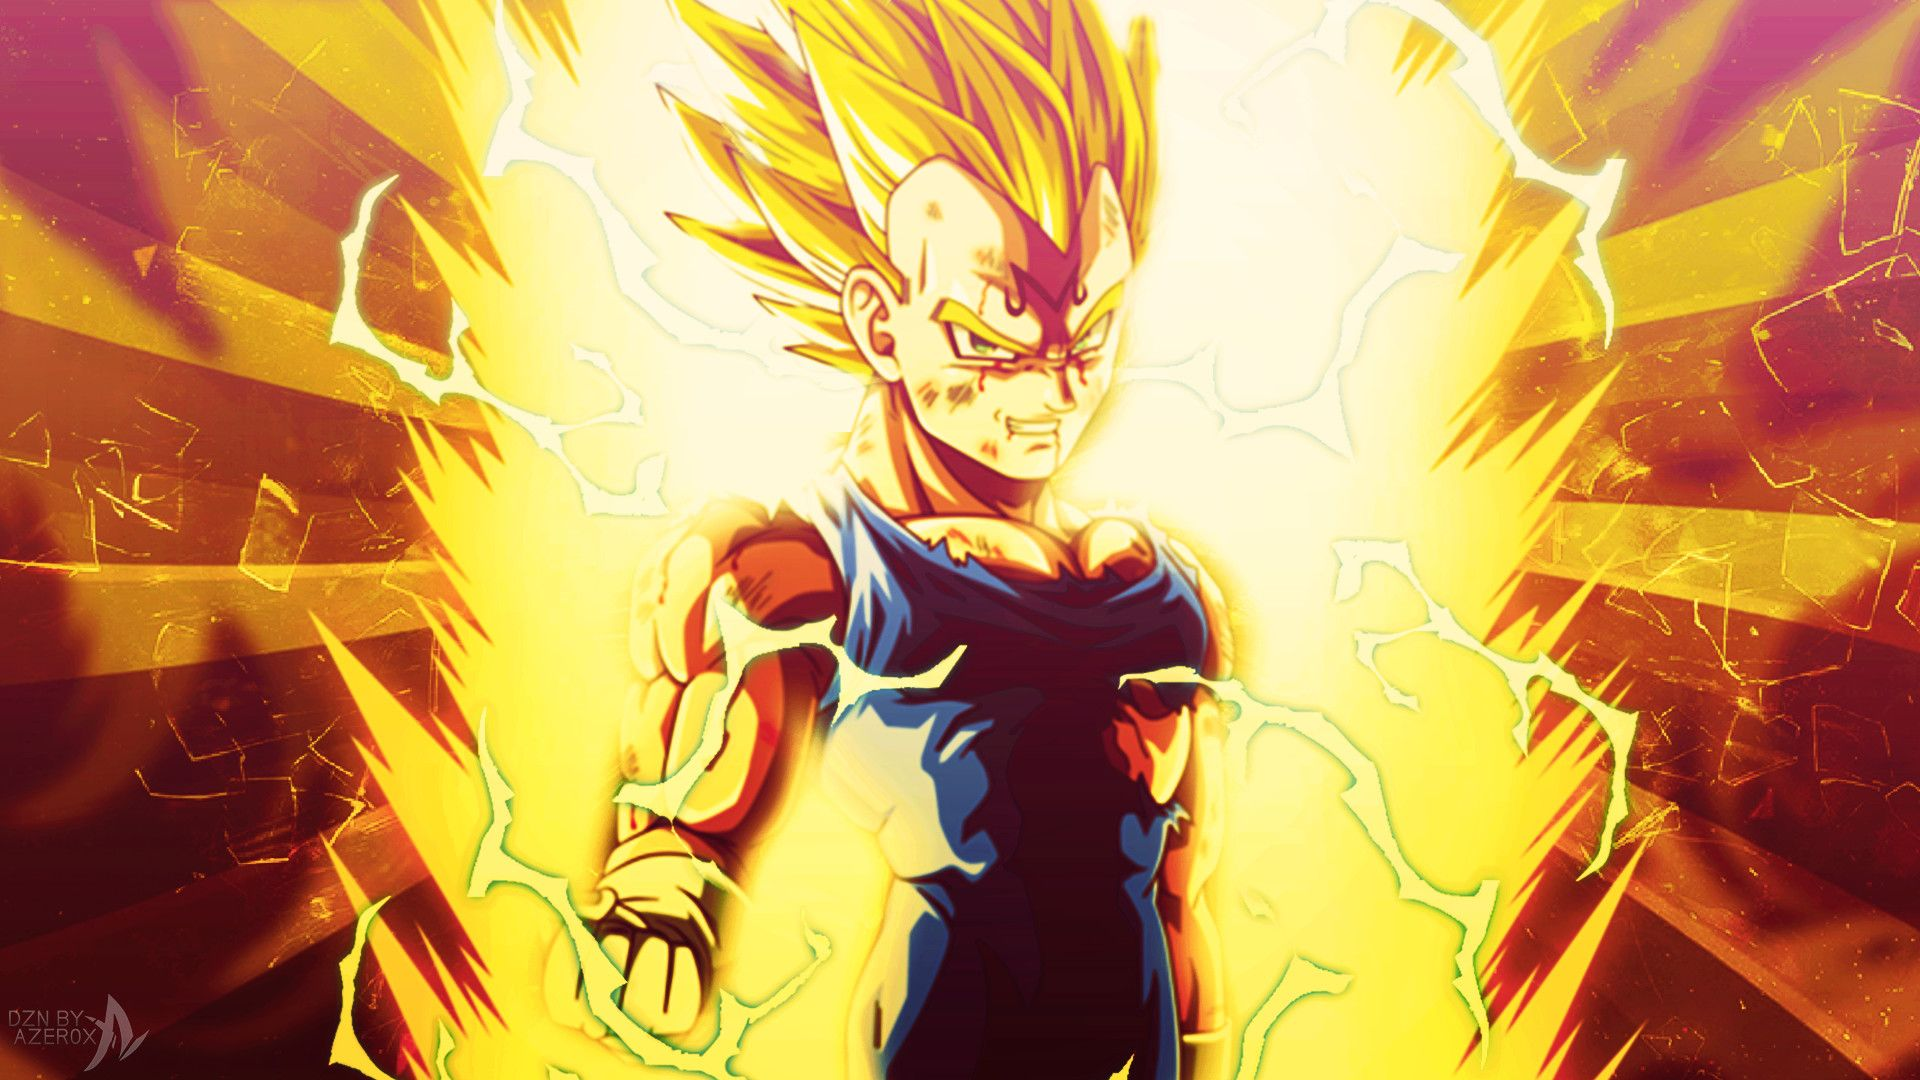 Majin Vegeta Wallpaper – A Beautiful And Comfortable Garden wallpaper Design